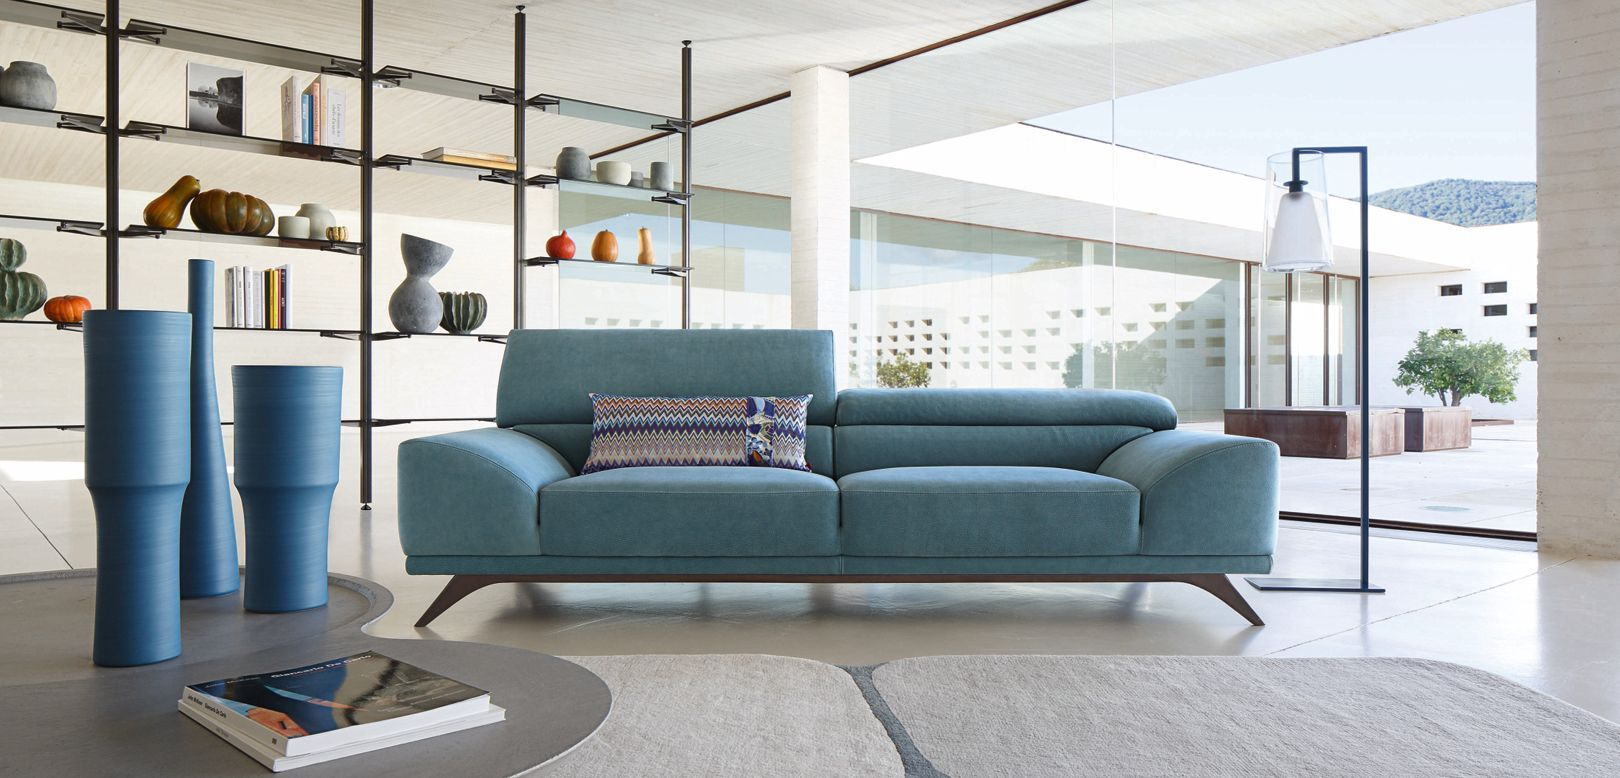 upholstery cleaning products for sofas sofa bed 3 seater leather this looks amazing! roche bobois - huge three-seats ...